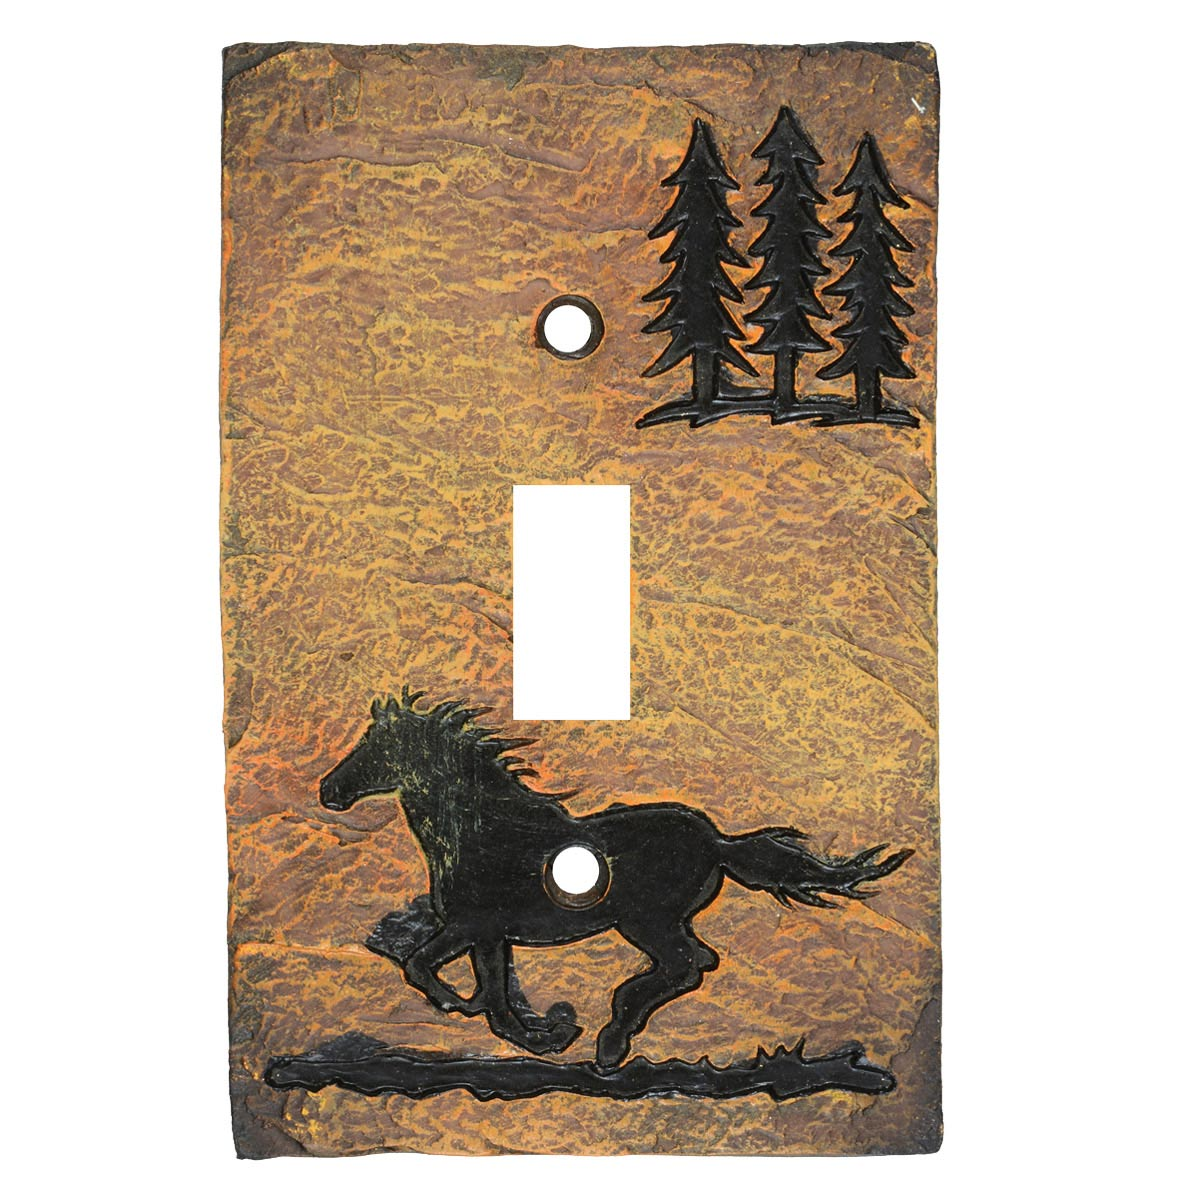 Wild Horse Stone Single Switch Cover